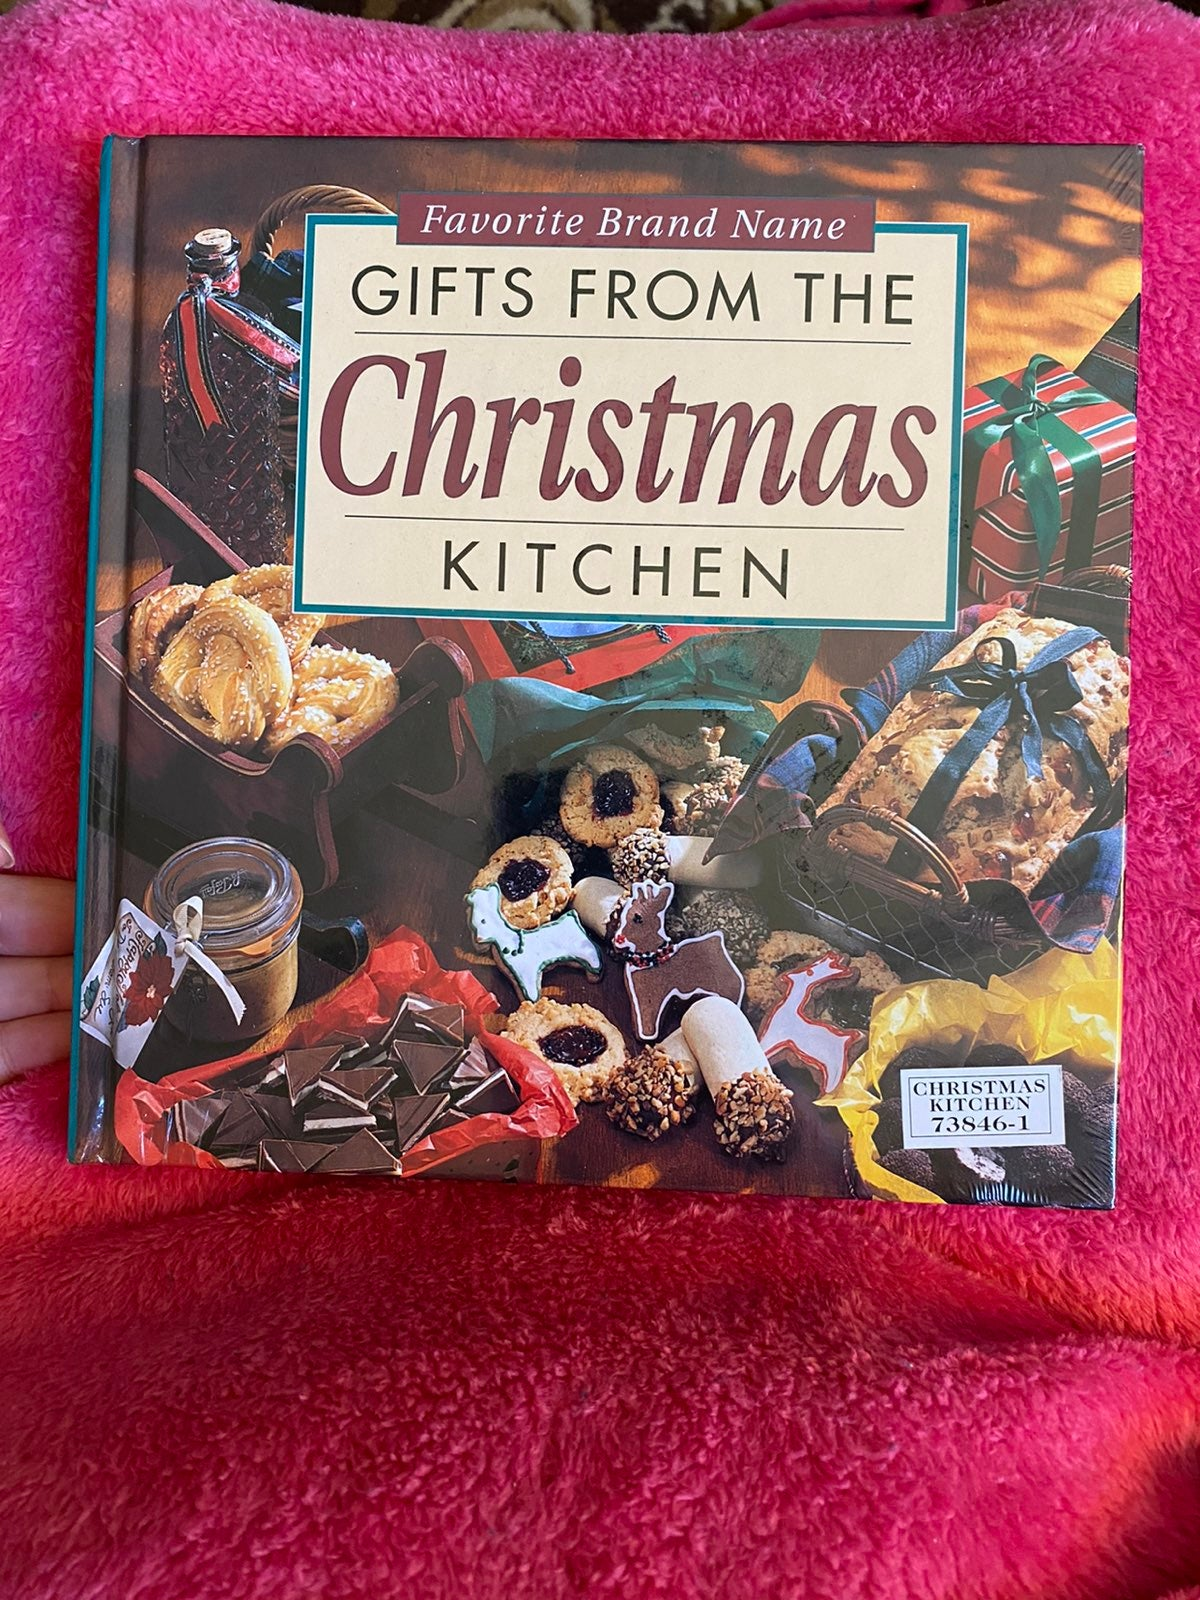 Gifts from the Christmas Kitchen book